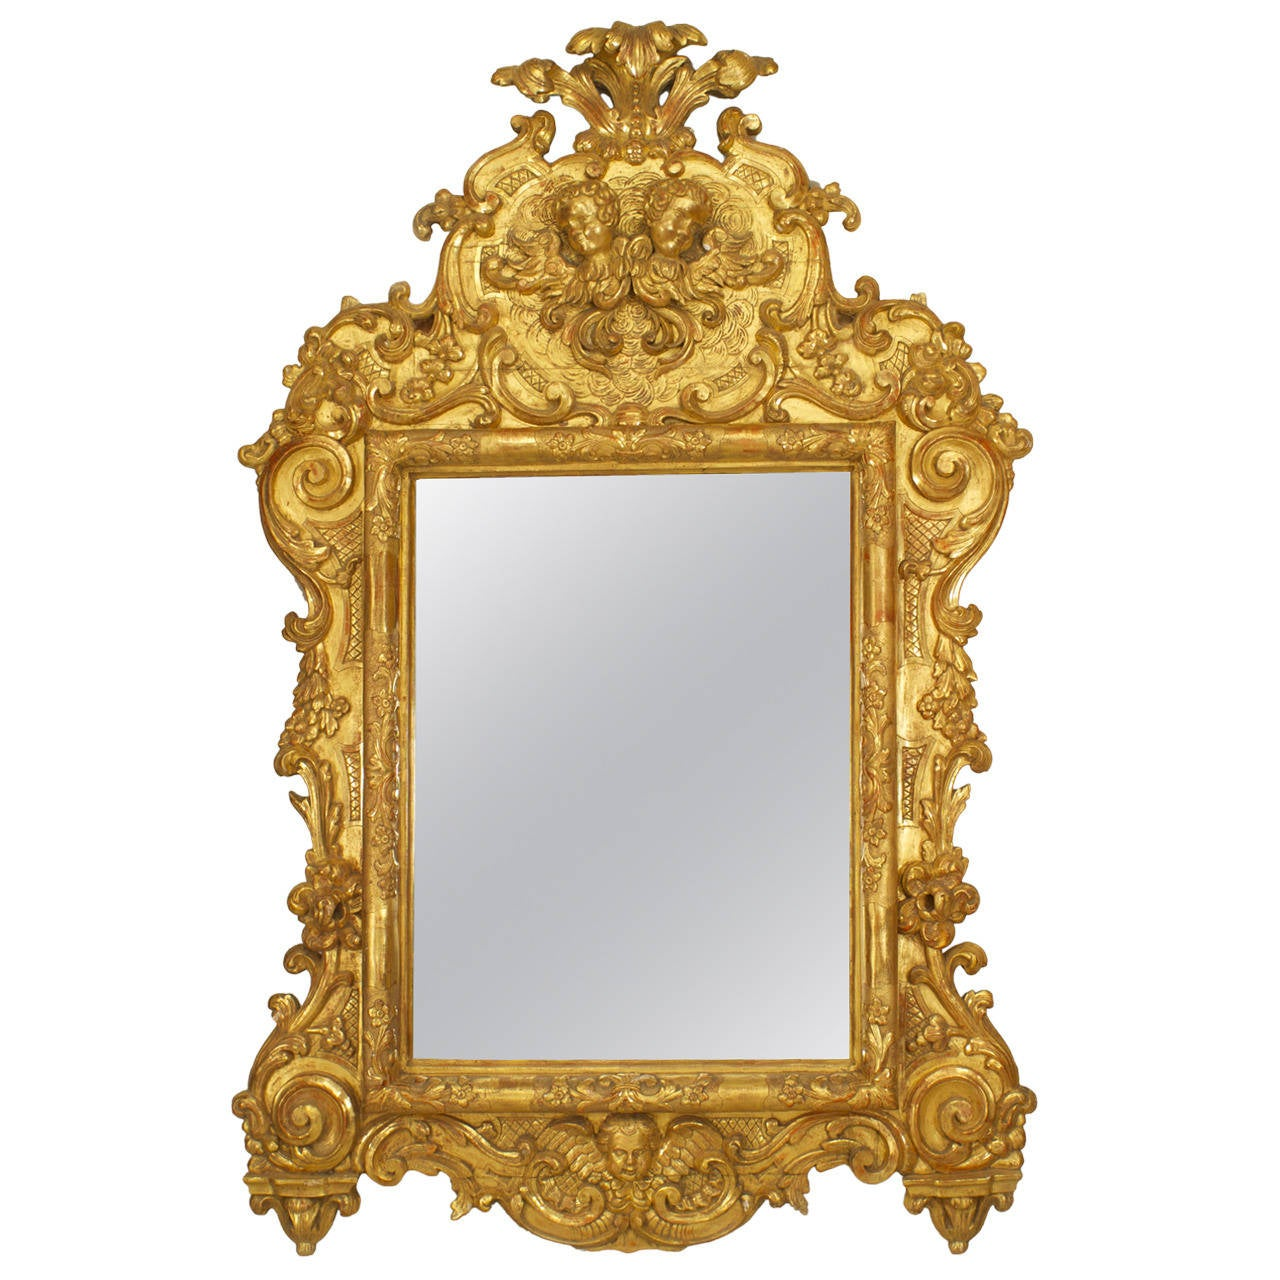 Large 18th century italian rococo carved giltwood mirror for Big mirrors for sale